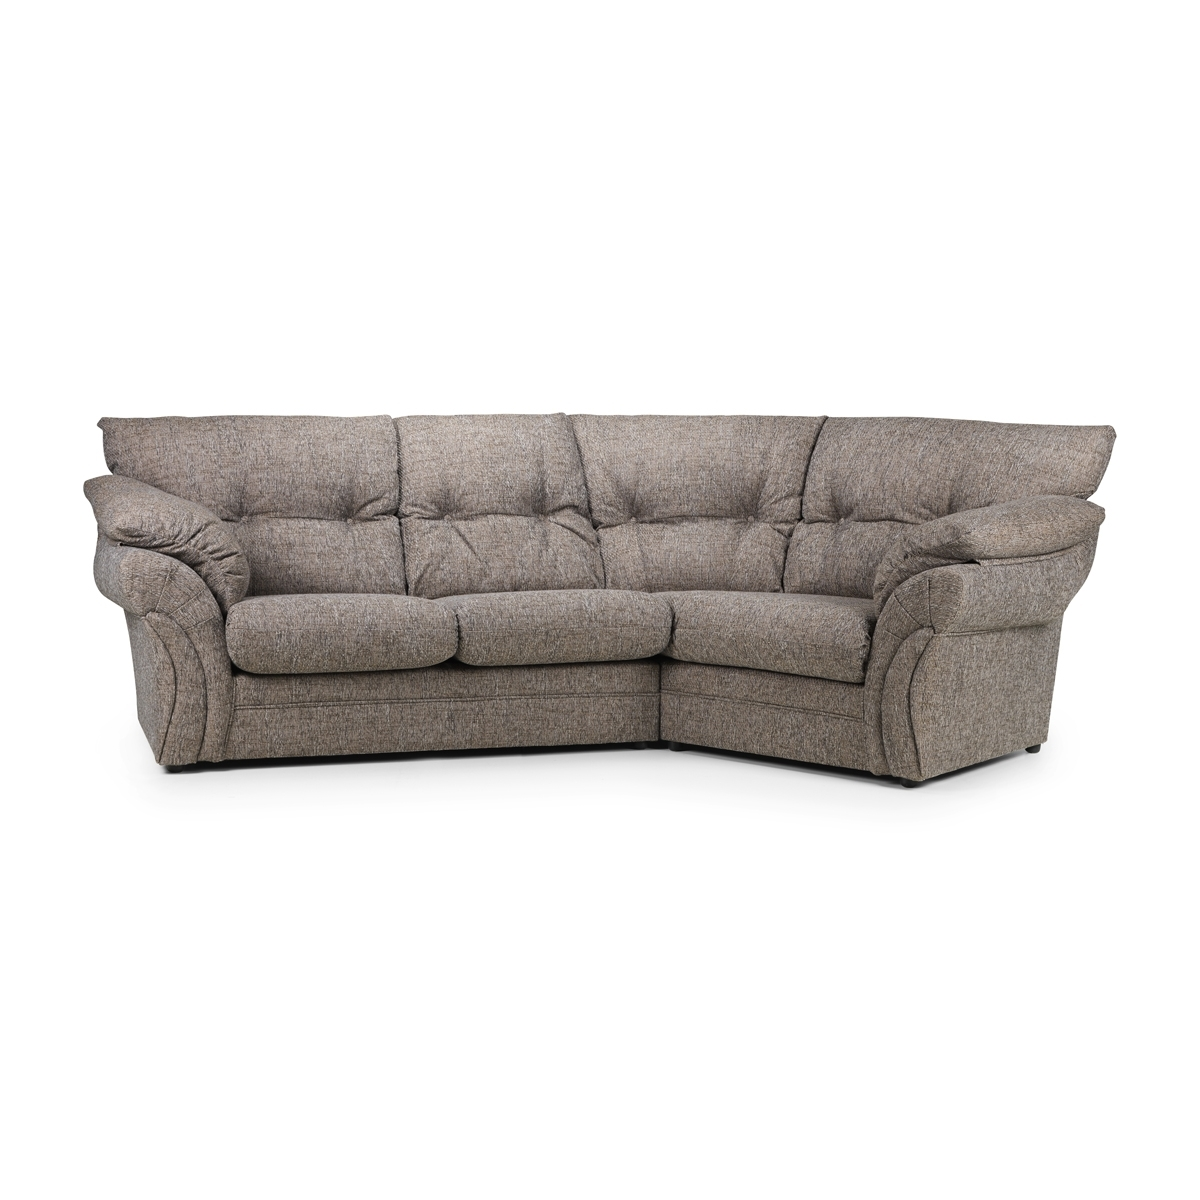 Recent Snuggle Sofas Within Fl Series – Snuggle Sofa Lh Only £999 At Sofa Success (View 10 of 20)